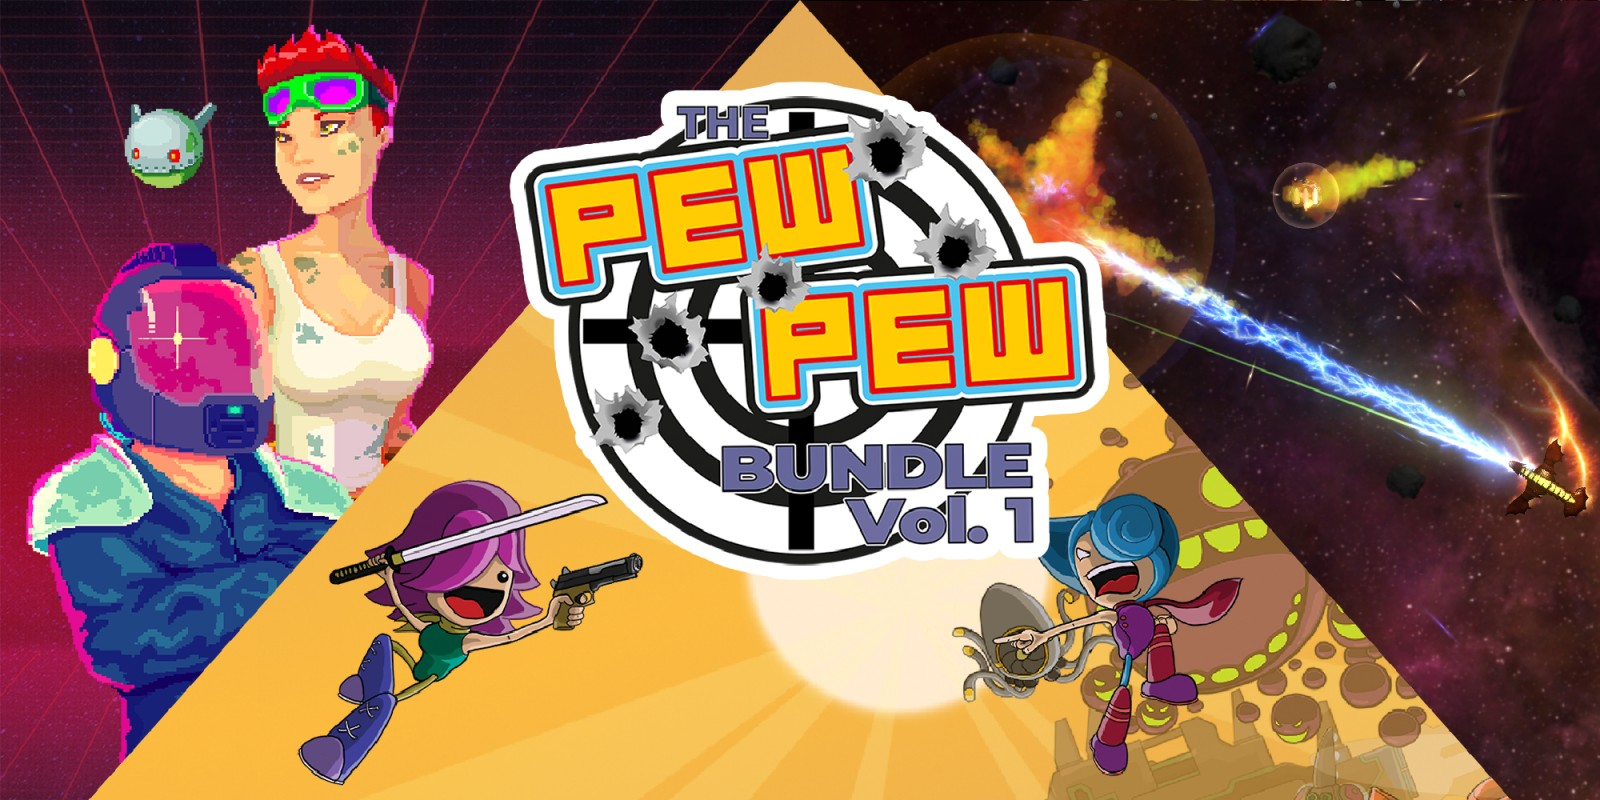 The Pew Pew Bundle Vol. 1